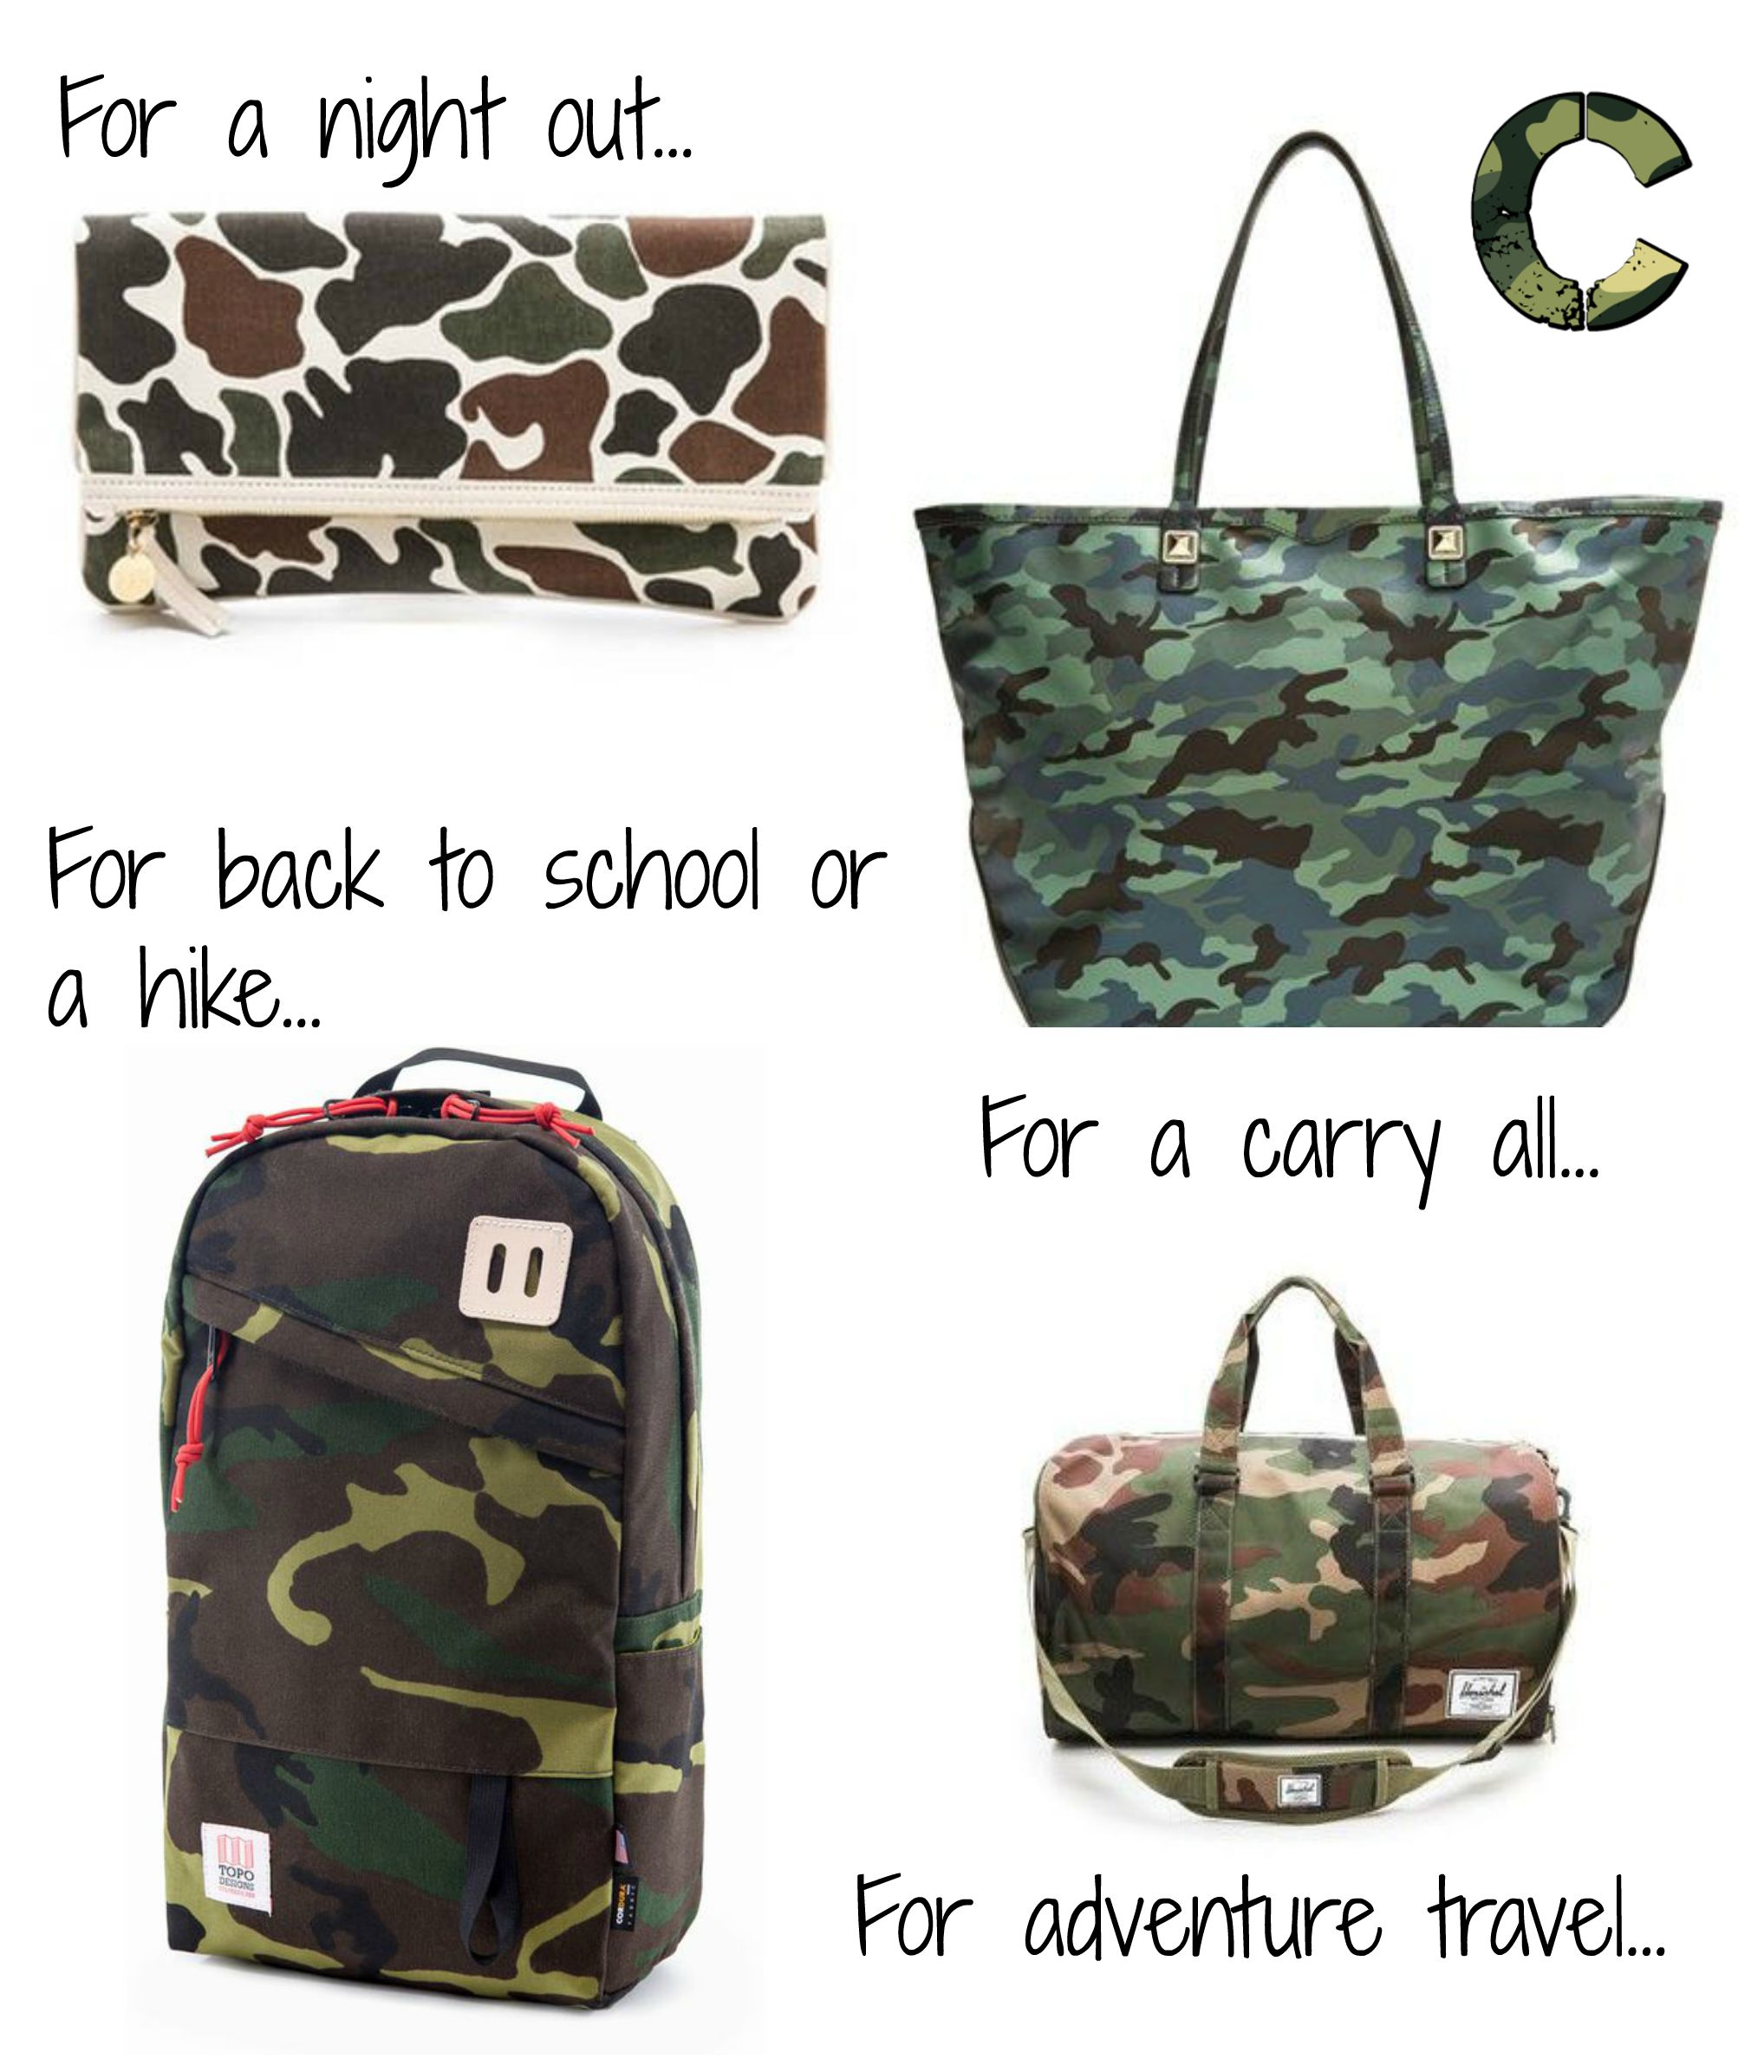 Camo bags for every occasion